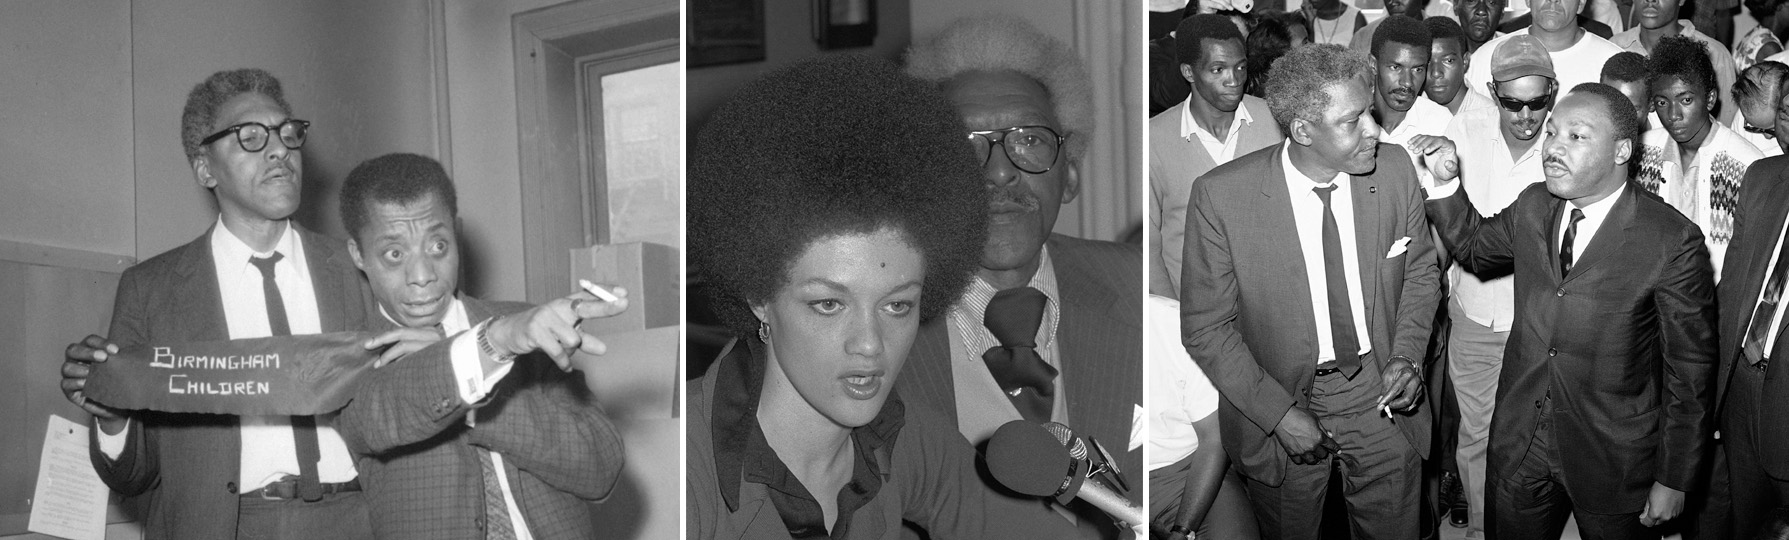 From left to right: Civil rights organizer Bayard Rustin, left, appears with writer James Baldwin, calling on President Kennedy to send troops to integrate Alabama schools in 1963; with former Black Panther Kathleen Cleaver in 1976; and with movement leader Dr. Martin Luther King, Jr. after the 1965 L.A. riots. (AP)